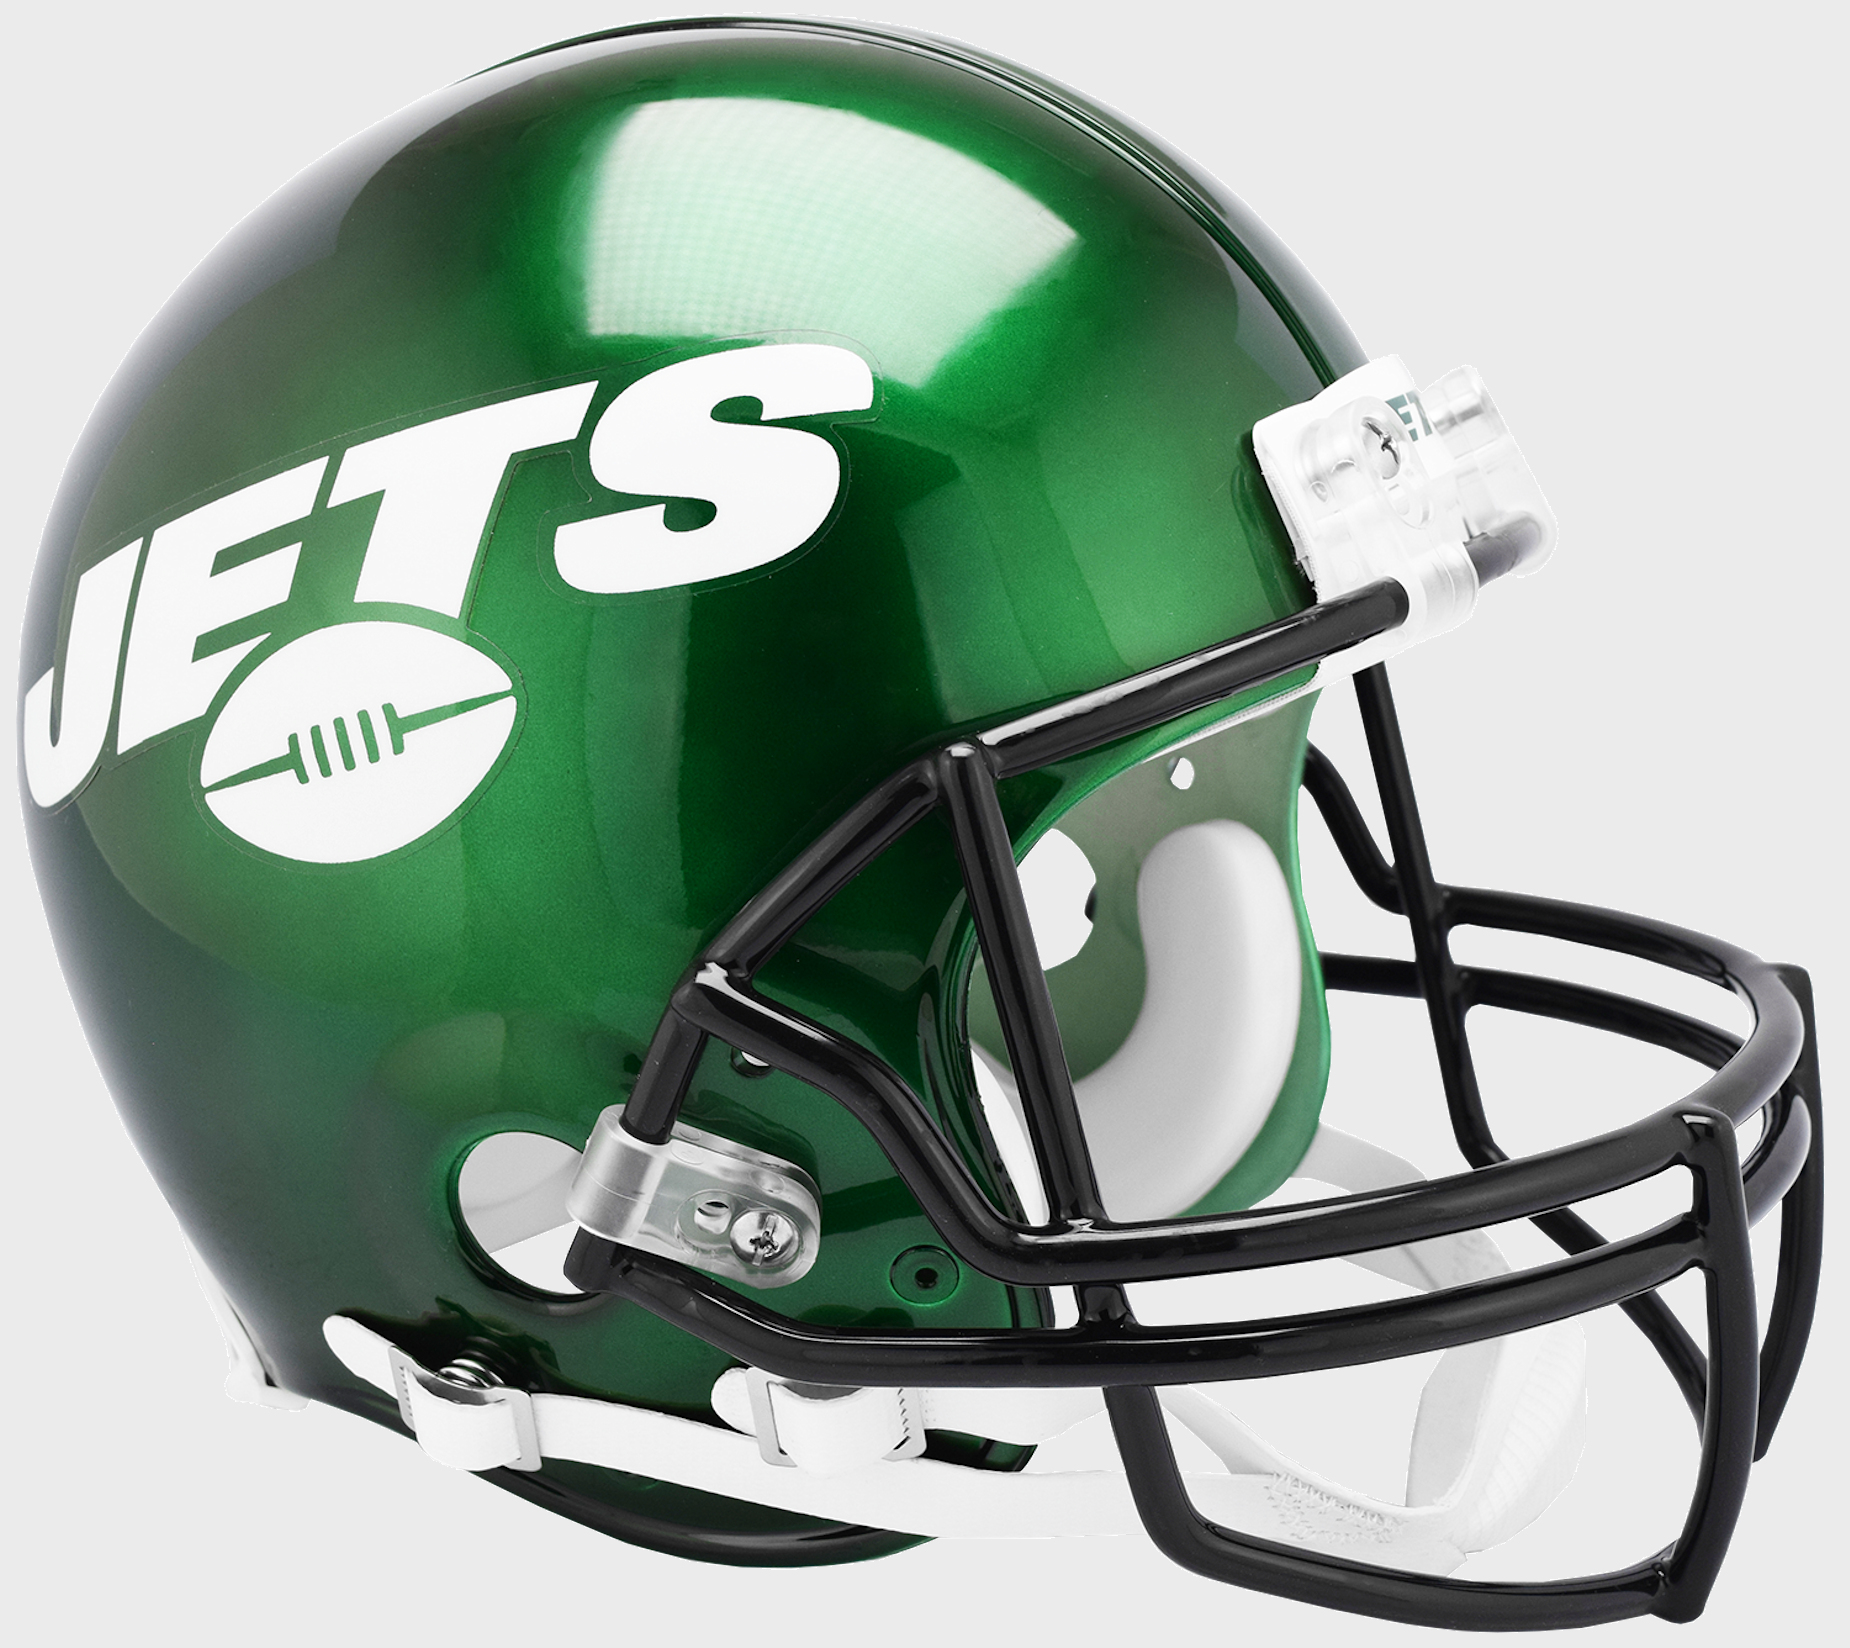 New York Jets Football Helmet B NEW 2019 B PSM-Powers Sports Memorabilia